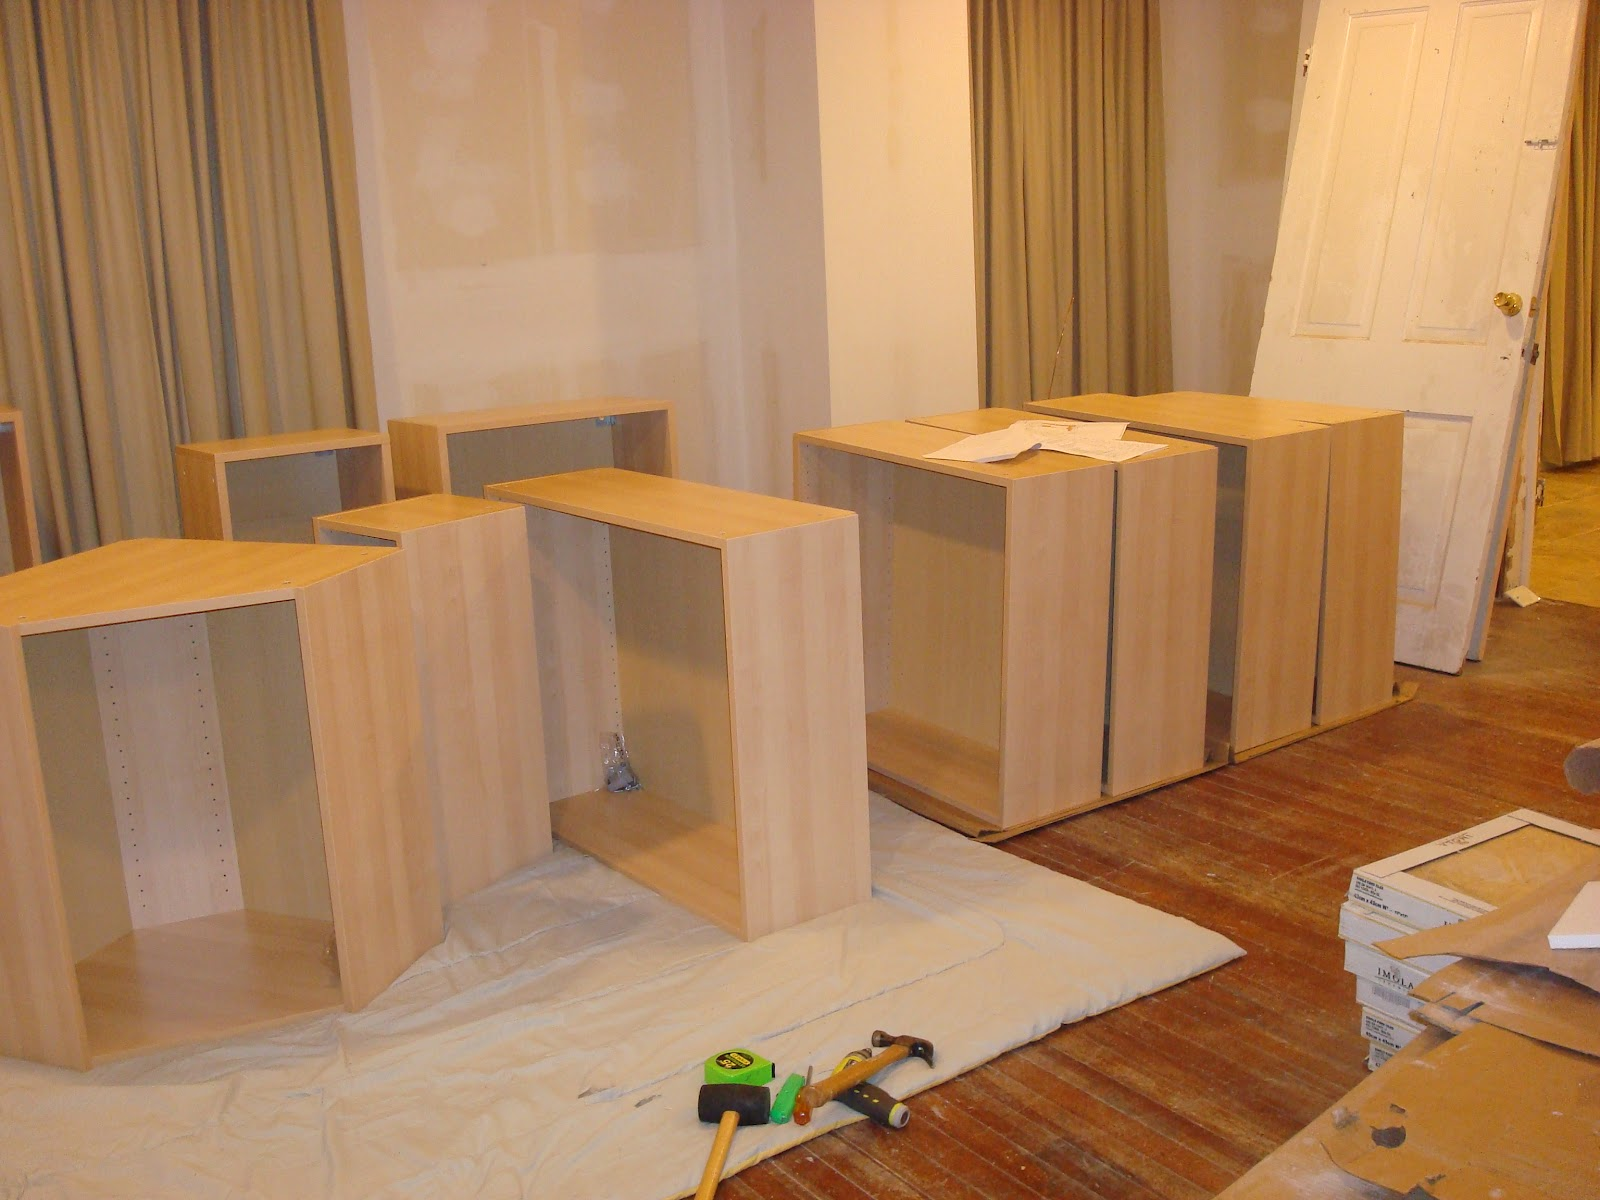 Building An Island With Ikea Cabinets ~ The rail is installed on the walls to hand the upper cabinets